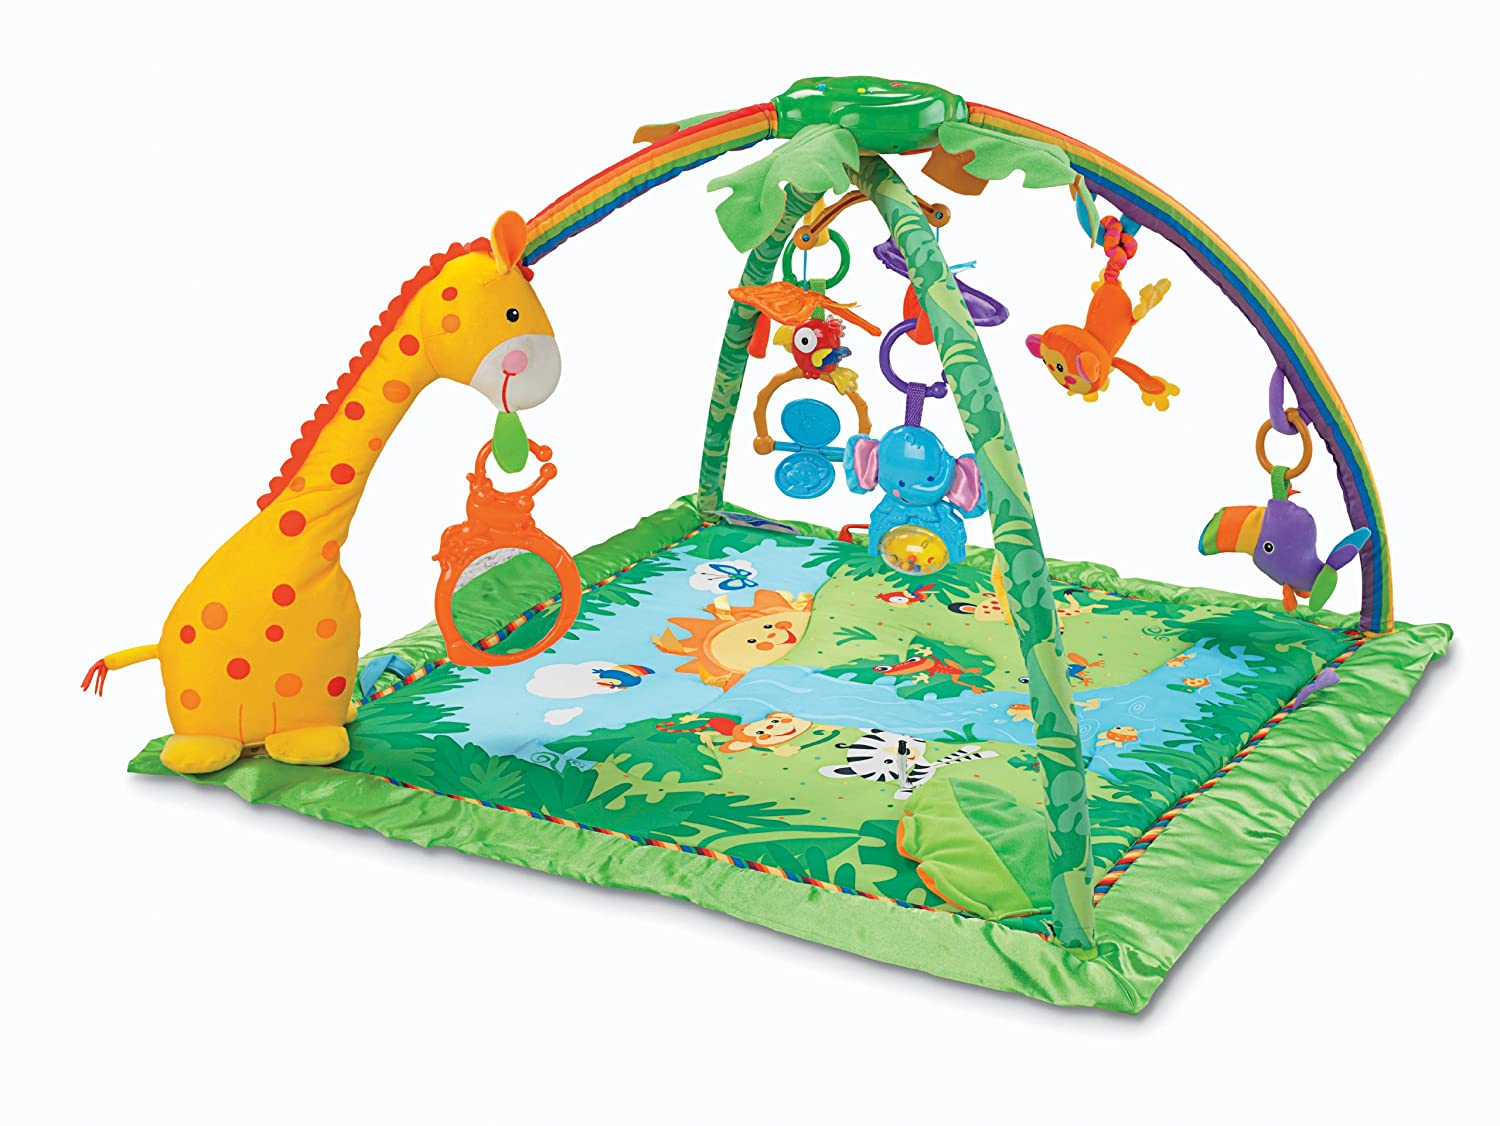 Fisher-Price Rainforest Melodies & Lights Deluxe Gym   B0084DQP4K